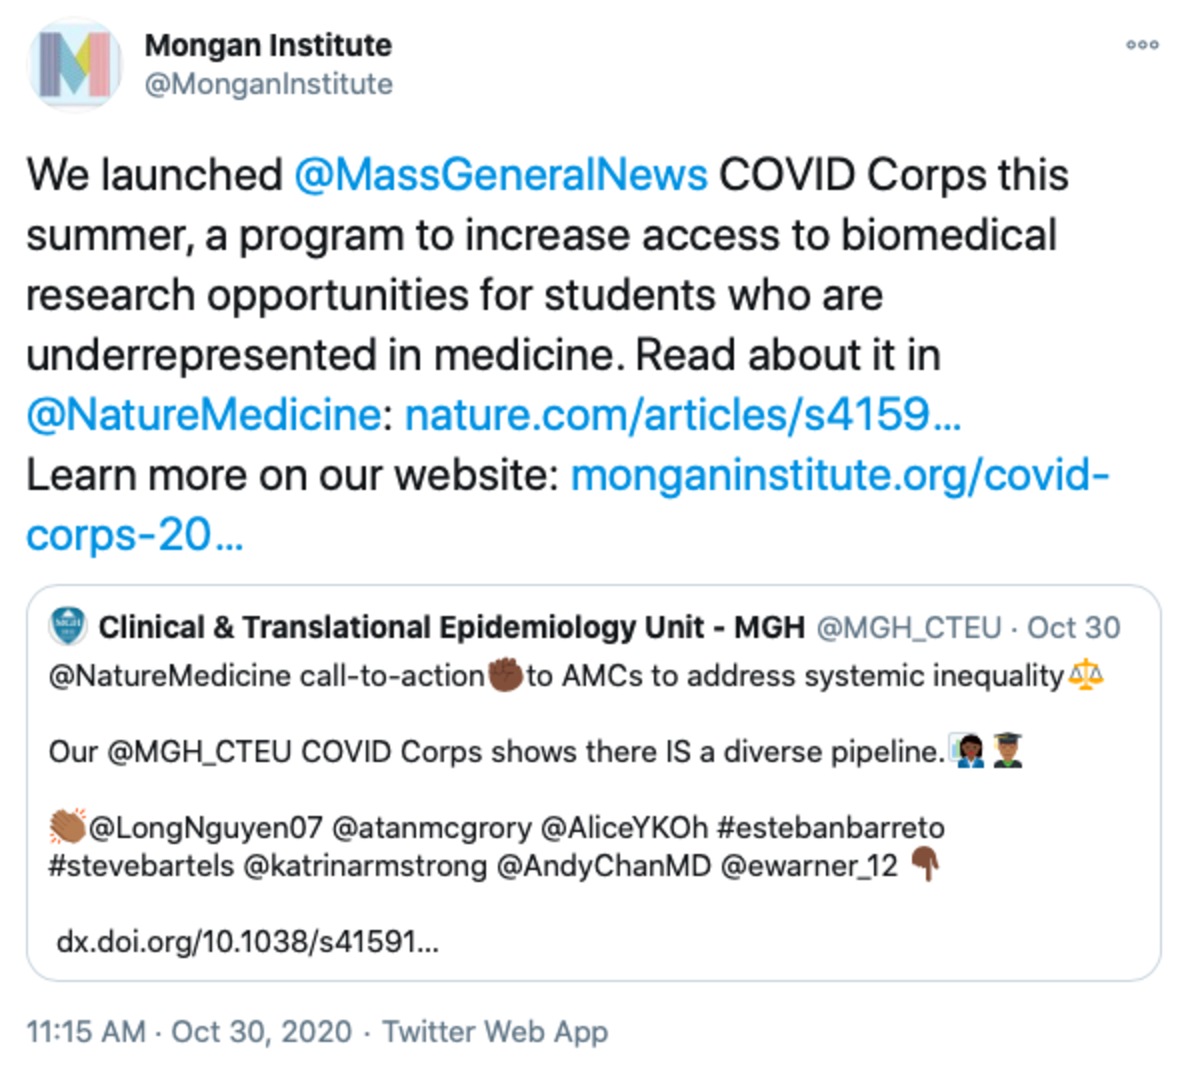 Tweet that reads: We launched @MassGeneralNews COVID Corps this summer, a program to increase access to biomedical research opportunities for students who are underrepresented in medicine. Read about it in @NatureMedicine